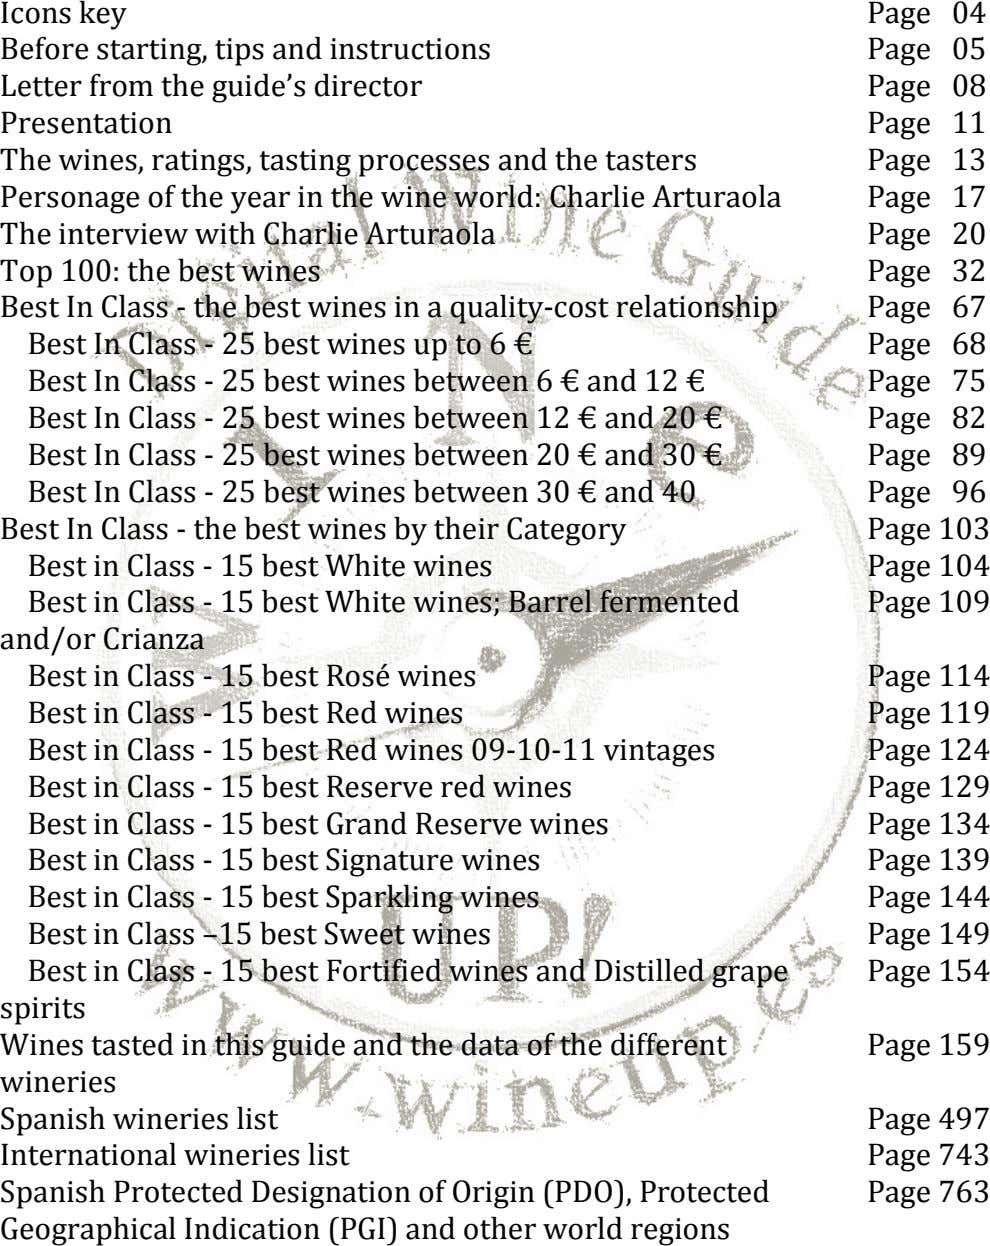 Icons key Before starting, tips and instructions Letter from the guide's director Presentation The wines,